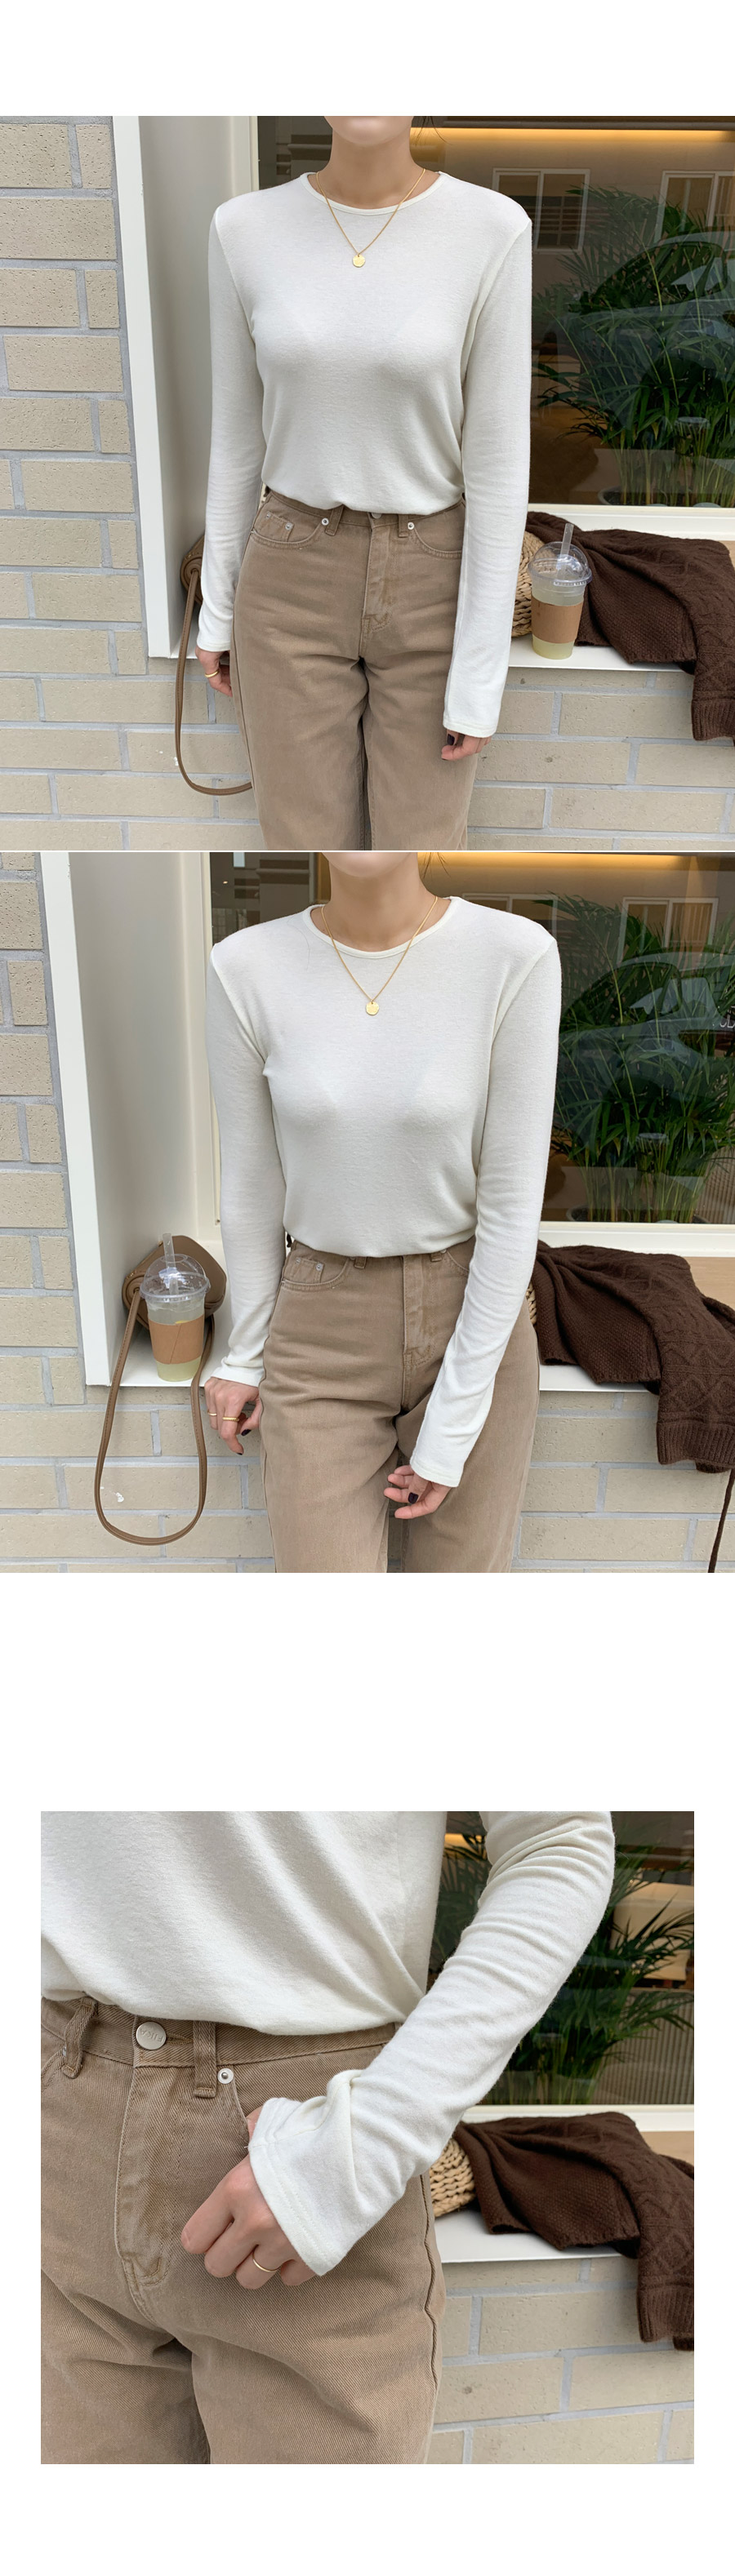 Mered wool t